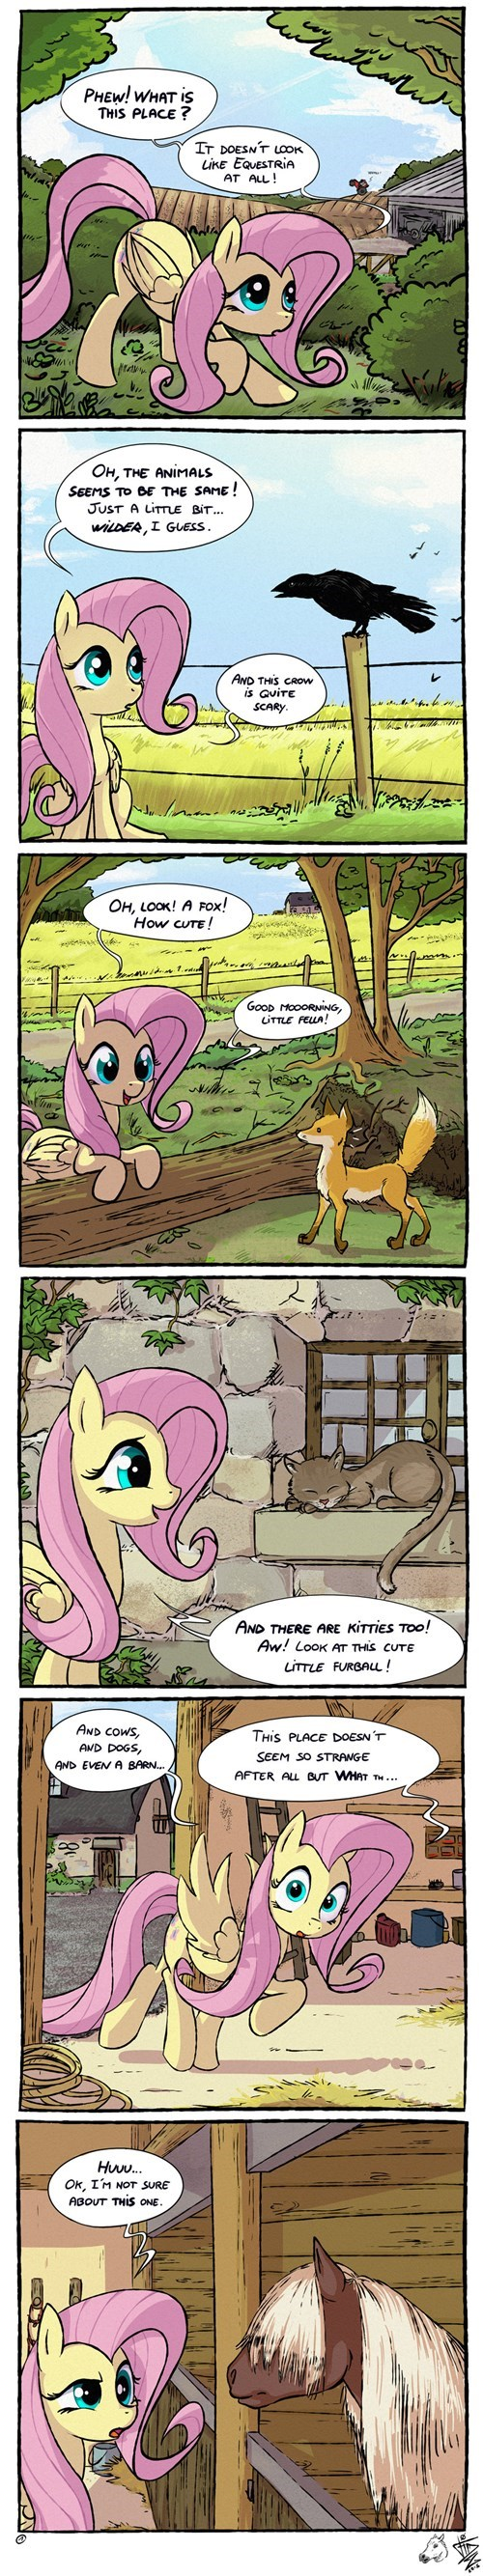 Fluttershy Enters a Nightmare Dimension